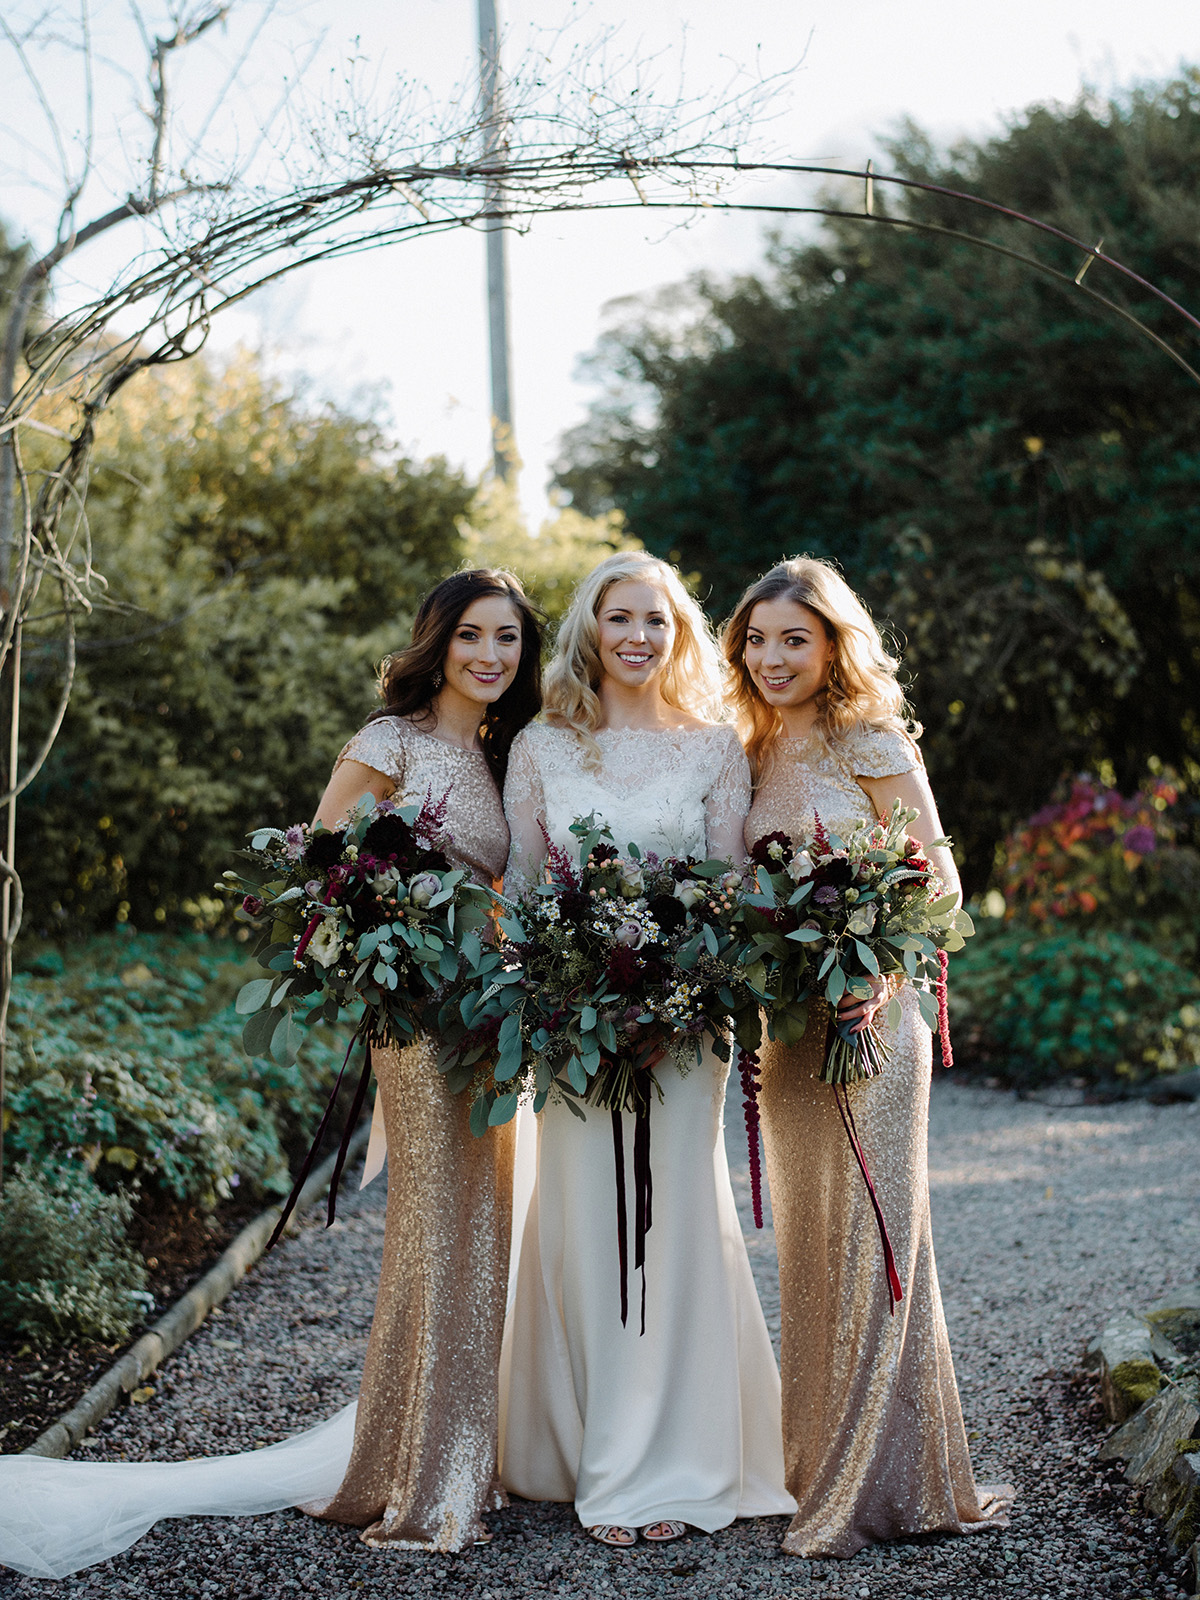 bridesmaids alternative wedding photography ireland larchfield estate